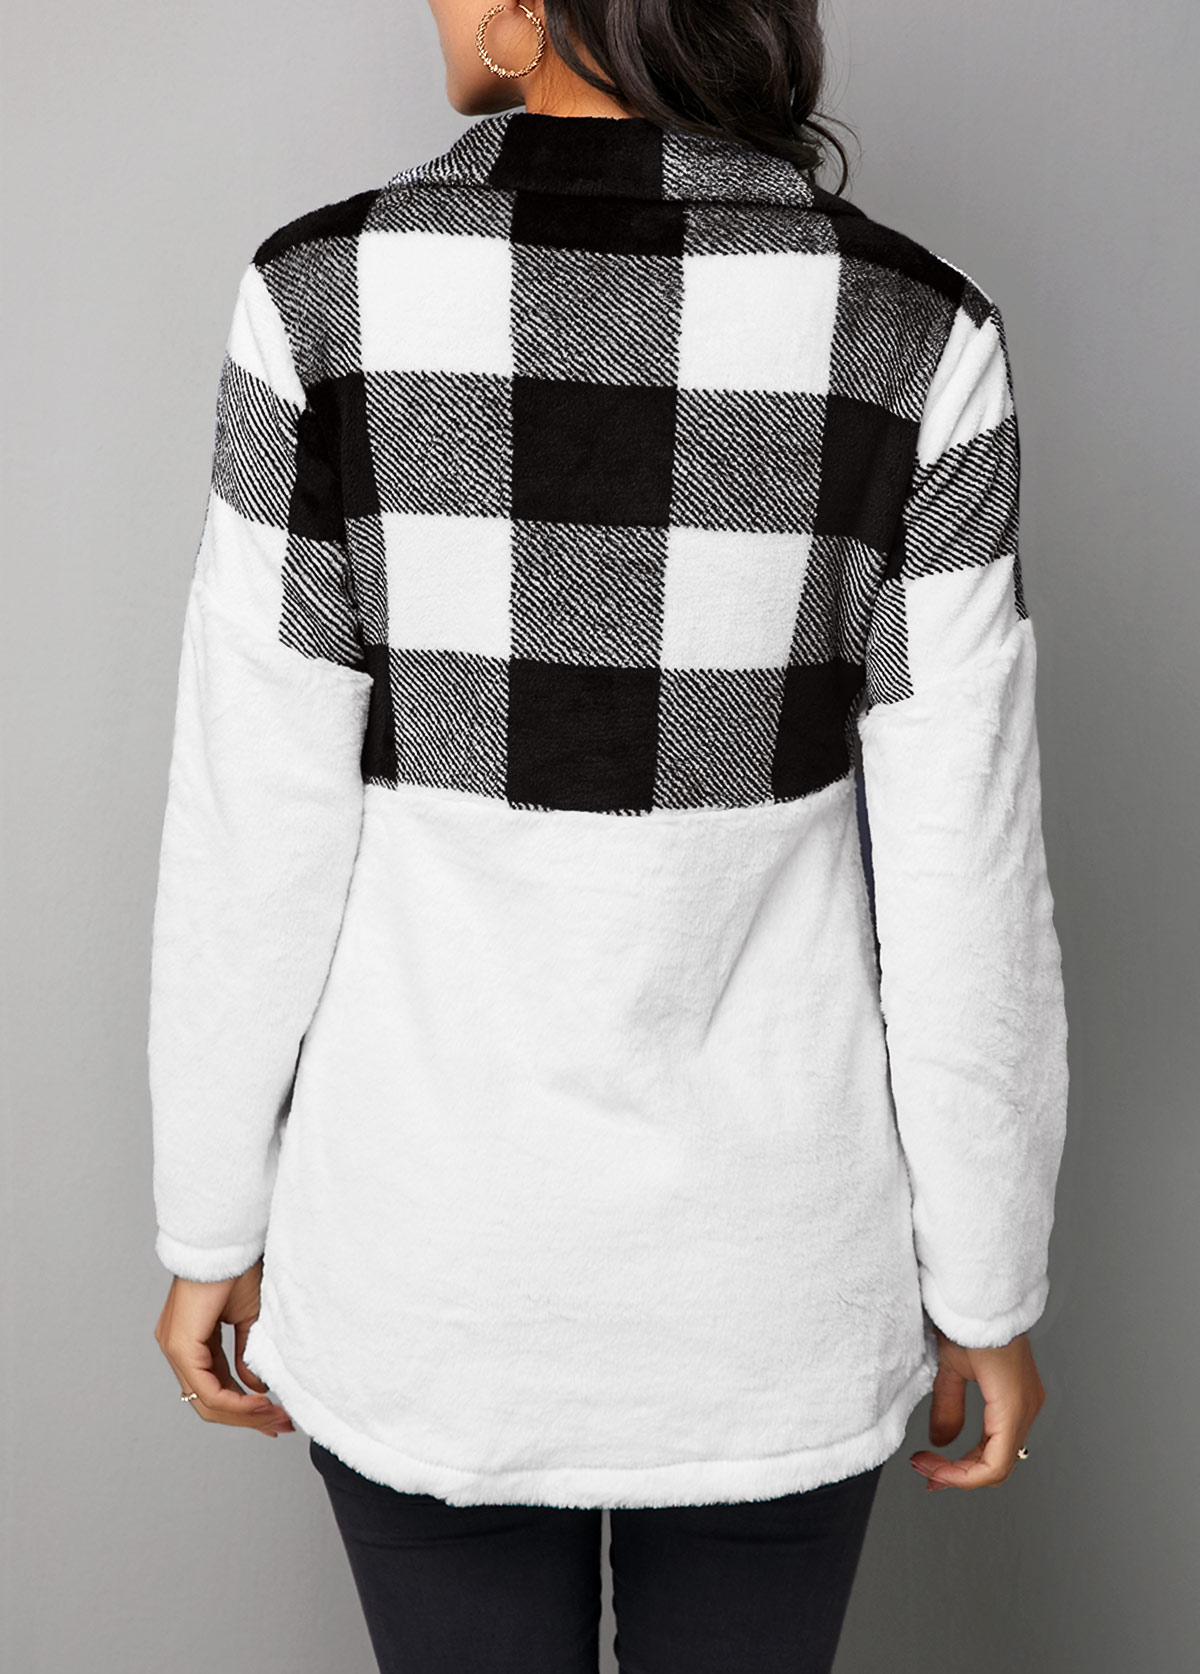 Long Sleeve Turndown Collar Plaid Patchwork Sweatshirt